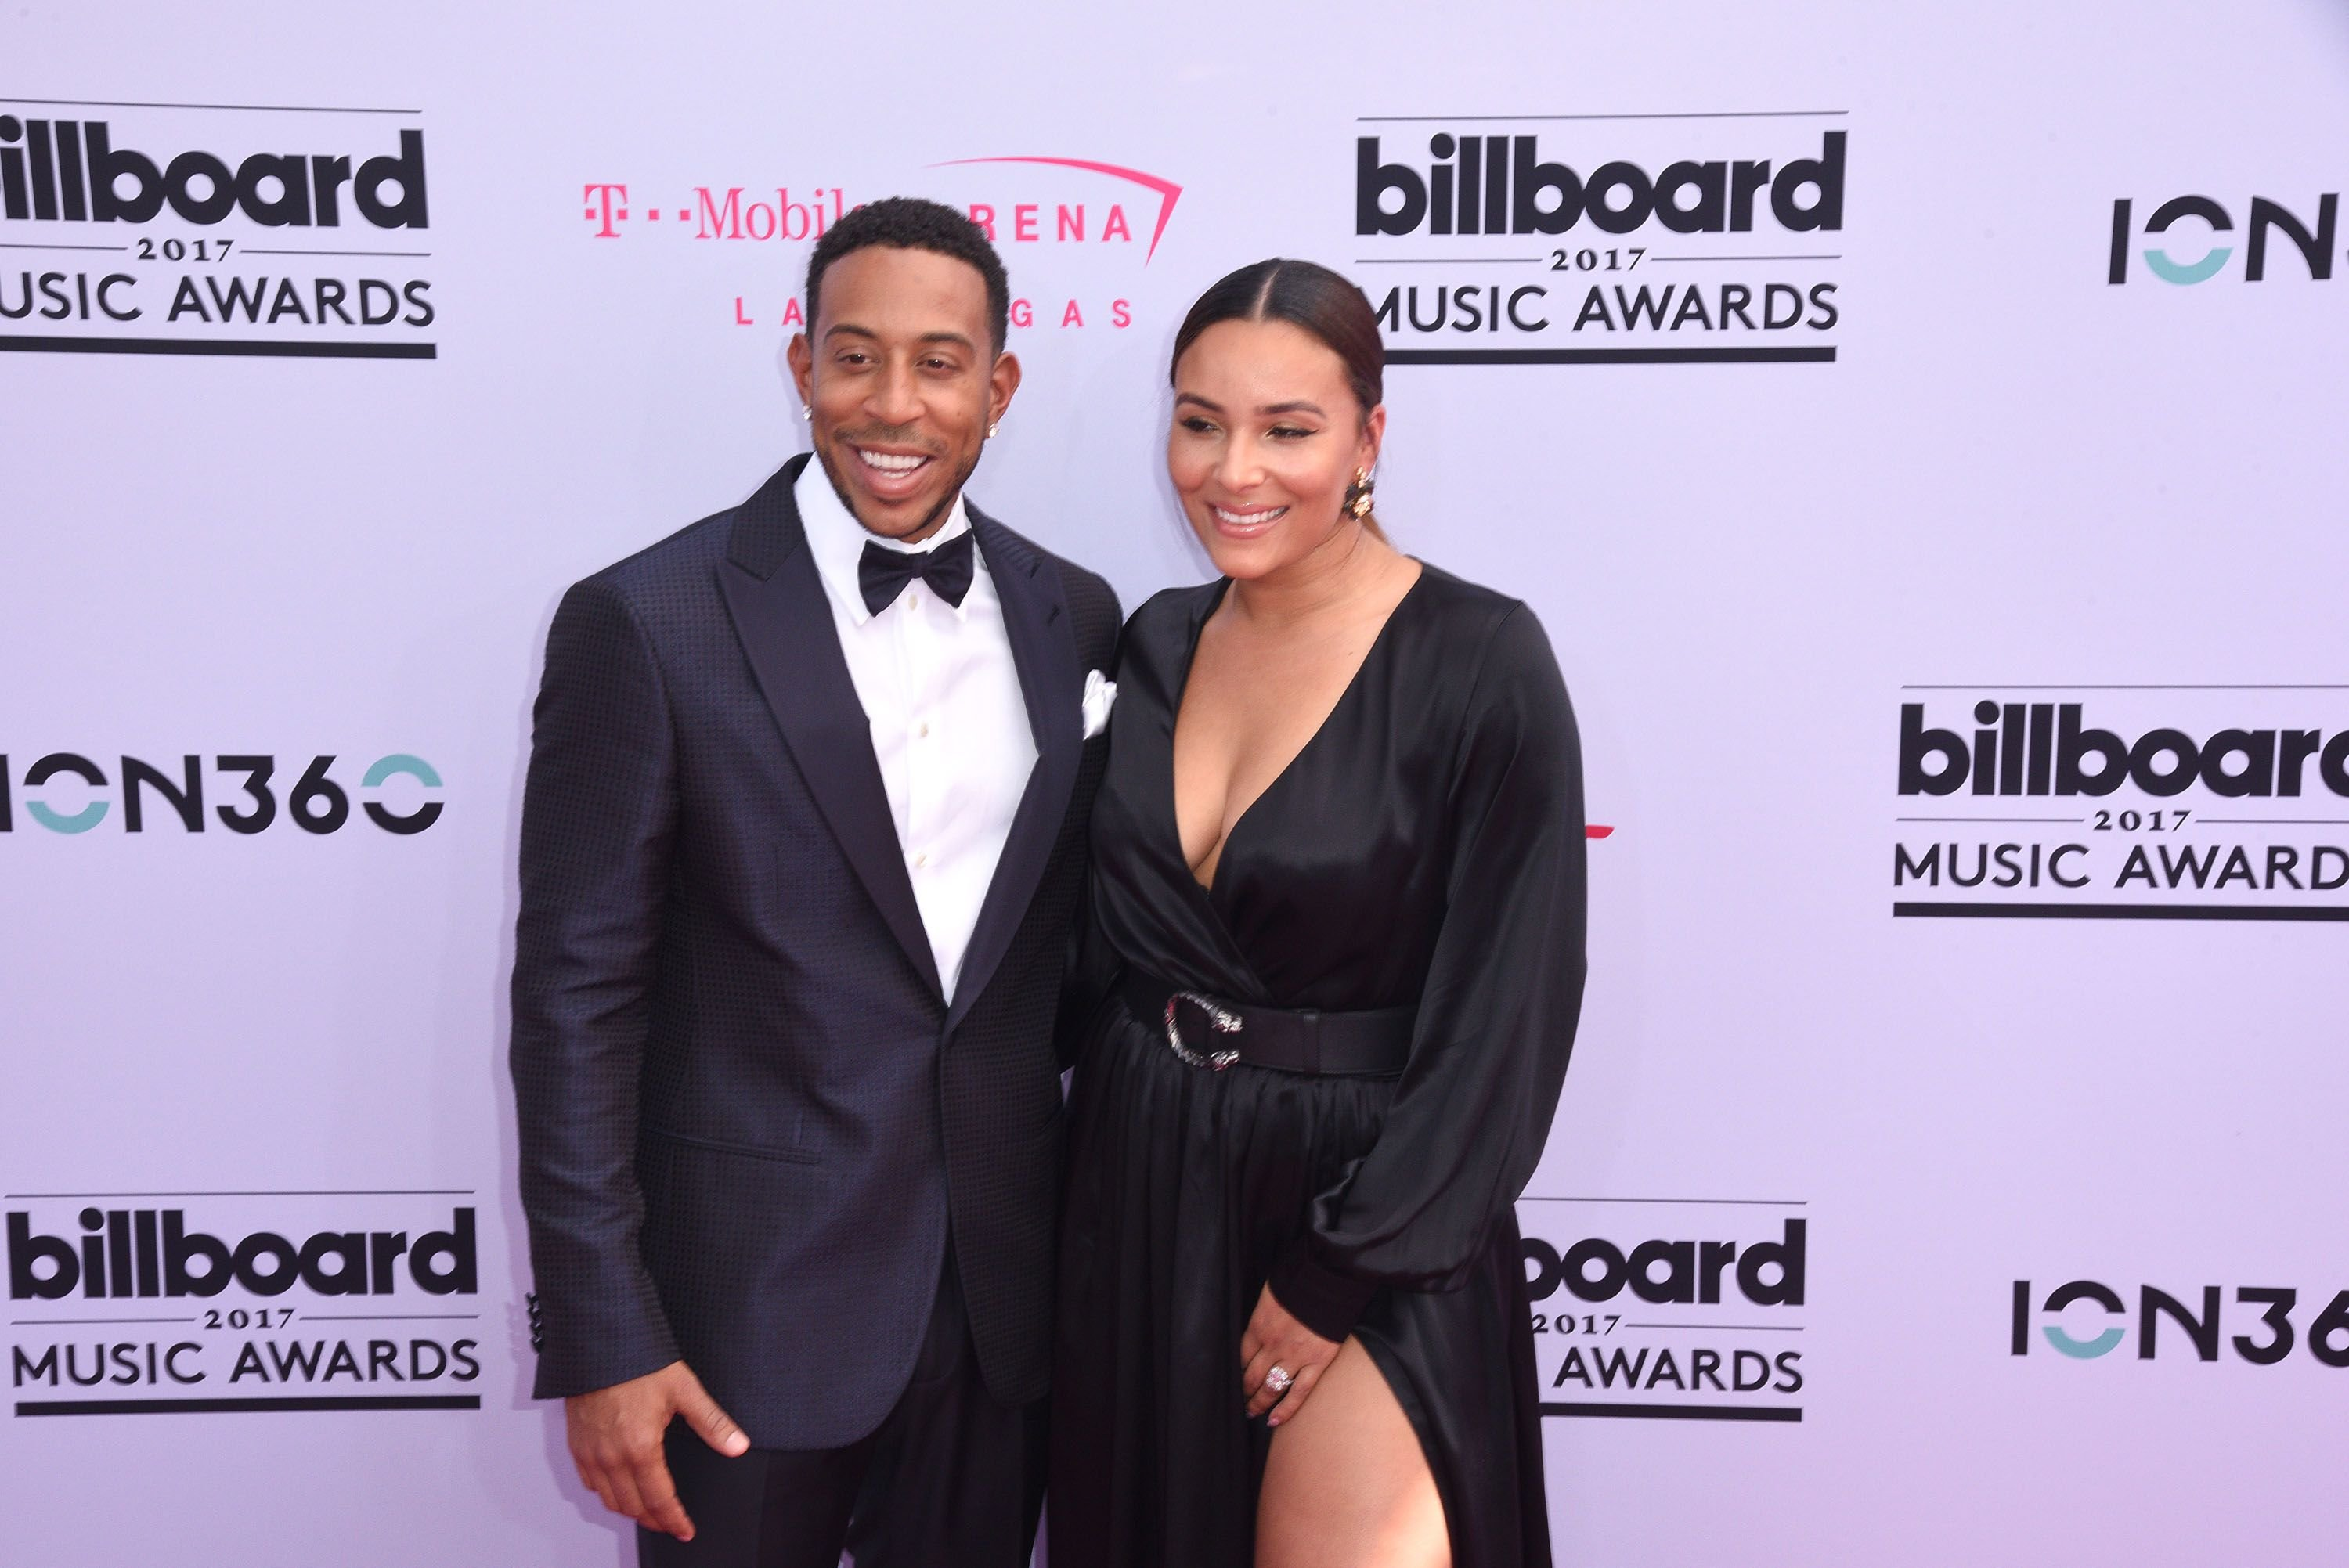 Ludacris and Eudoxie Mbouguiengue at the Billboard Music Awards on May 21, 2017 in Las Vegas, Nevada | Photo: Getty Images